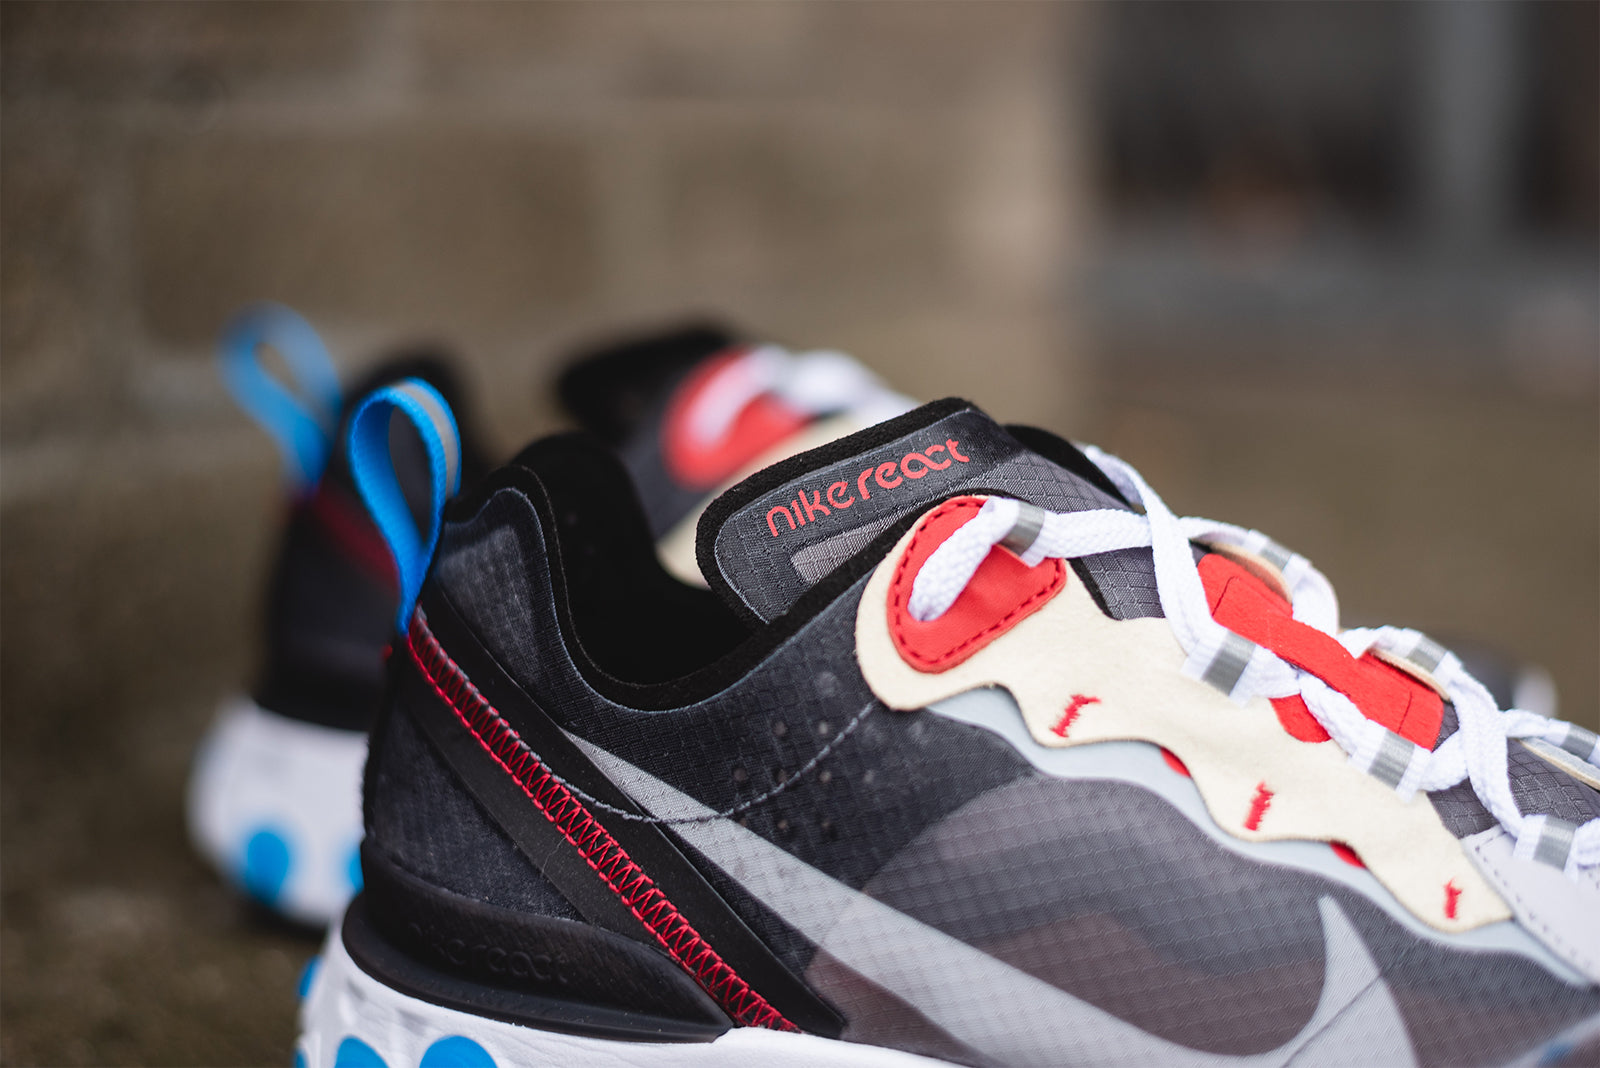 6b2fef95c913 Nike React Element 87. AQ1090-003. Dark Grey Pure Platinum-Photo Blue  Price  £135.00. Launch  Thursday 16th of August ONLINE  08 00BST